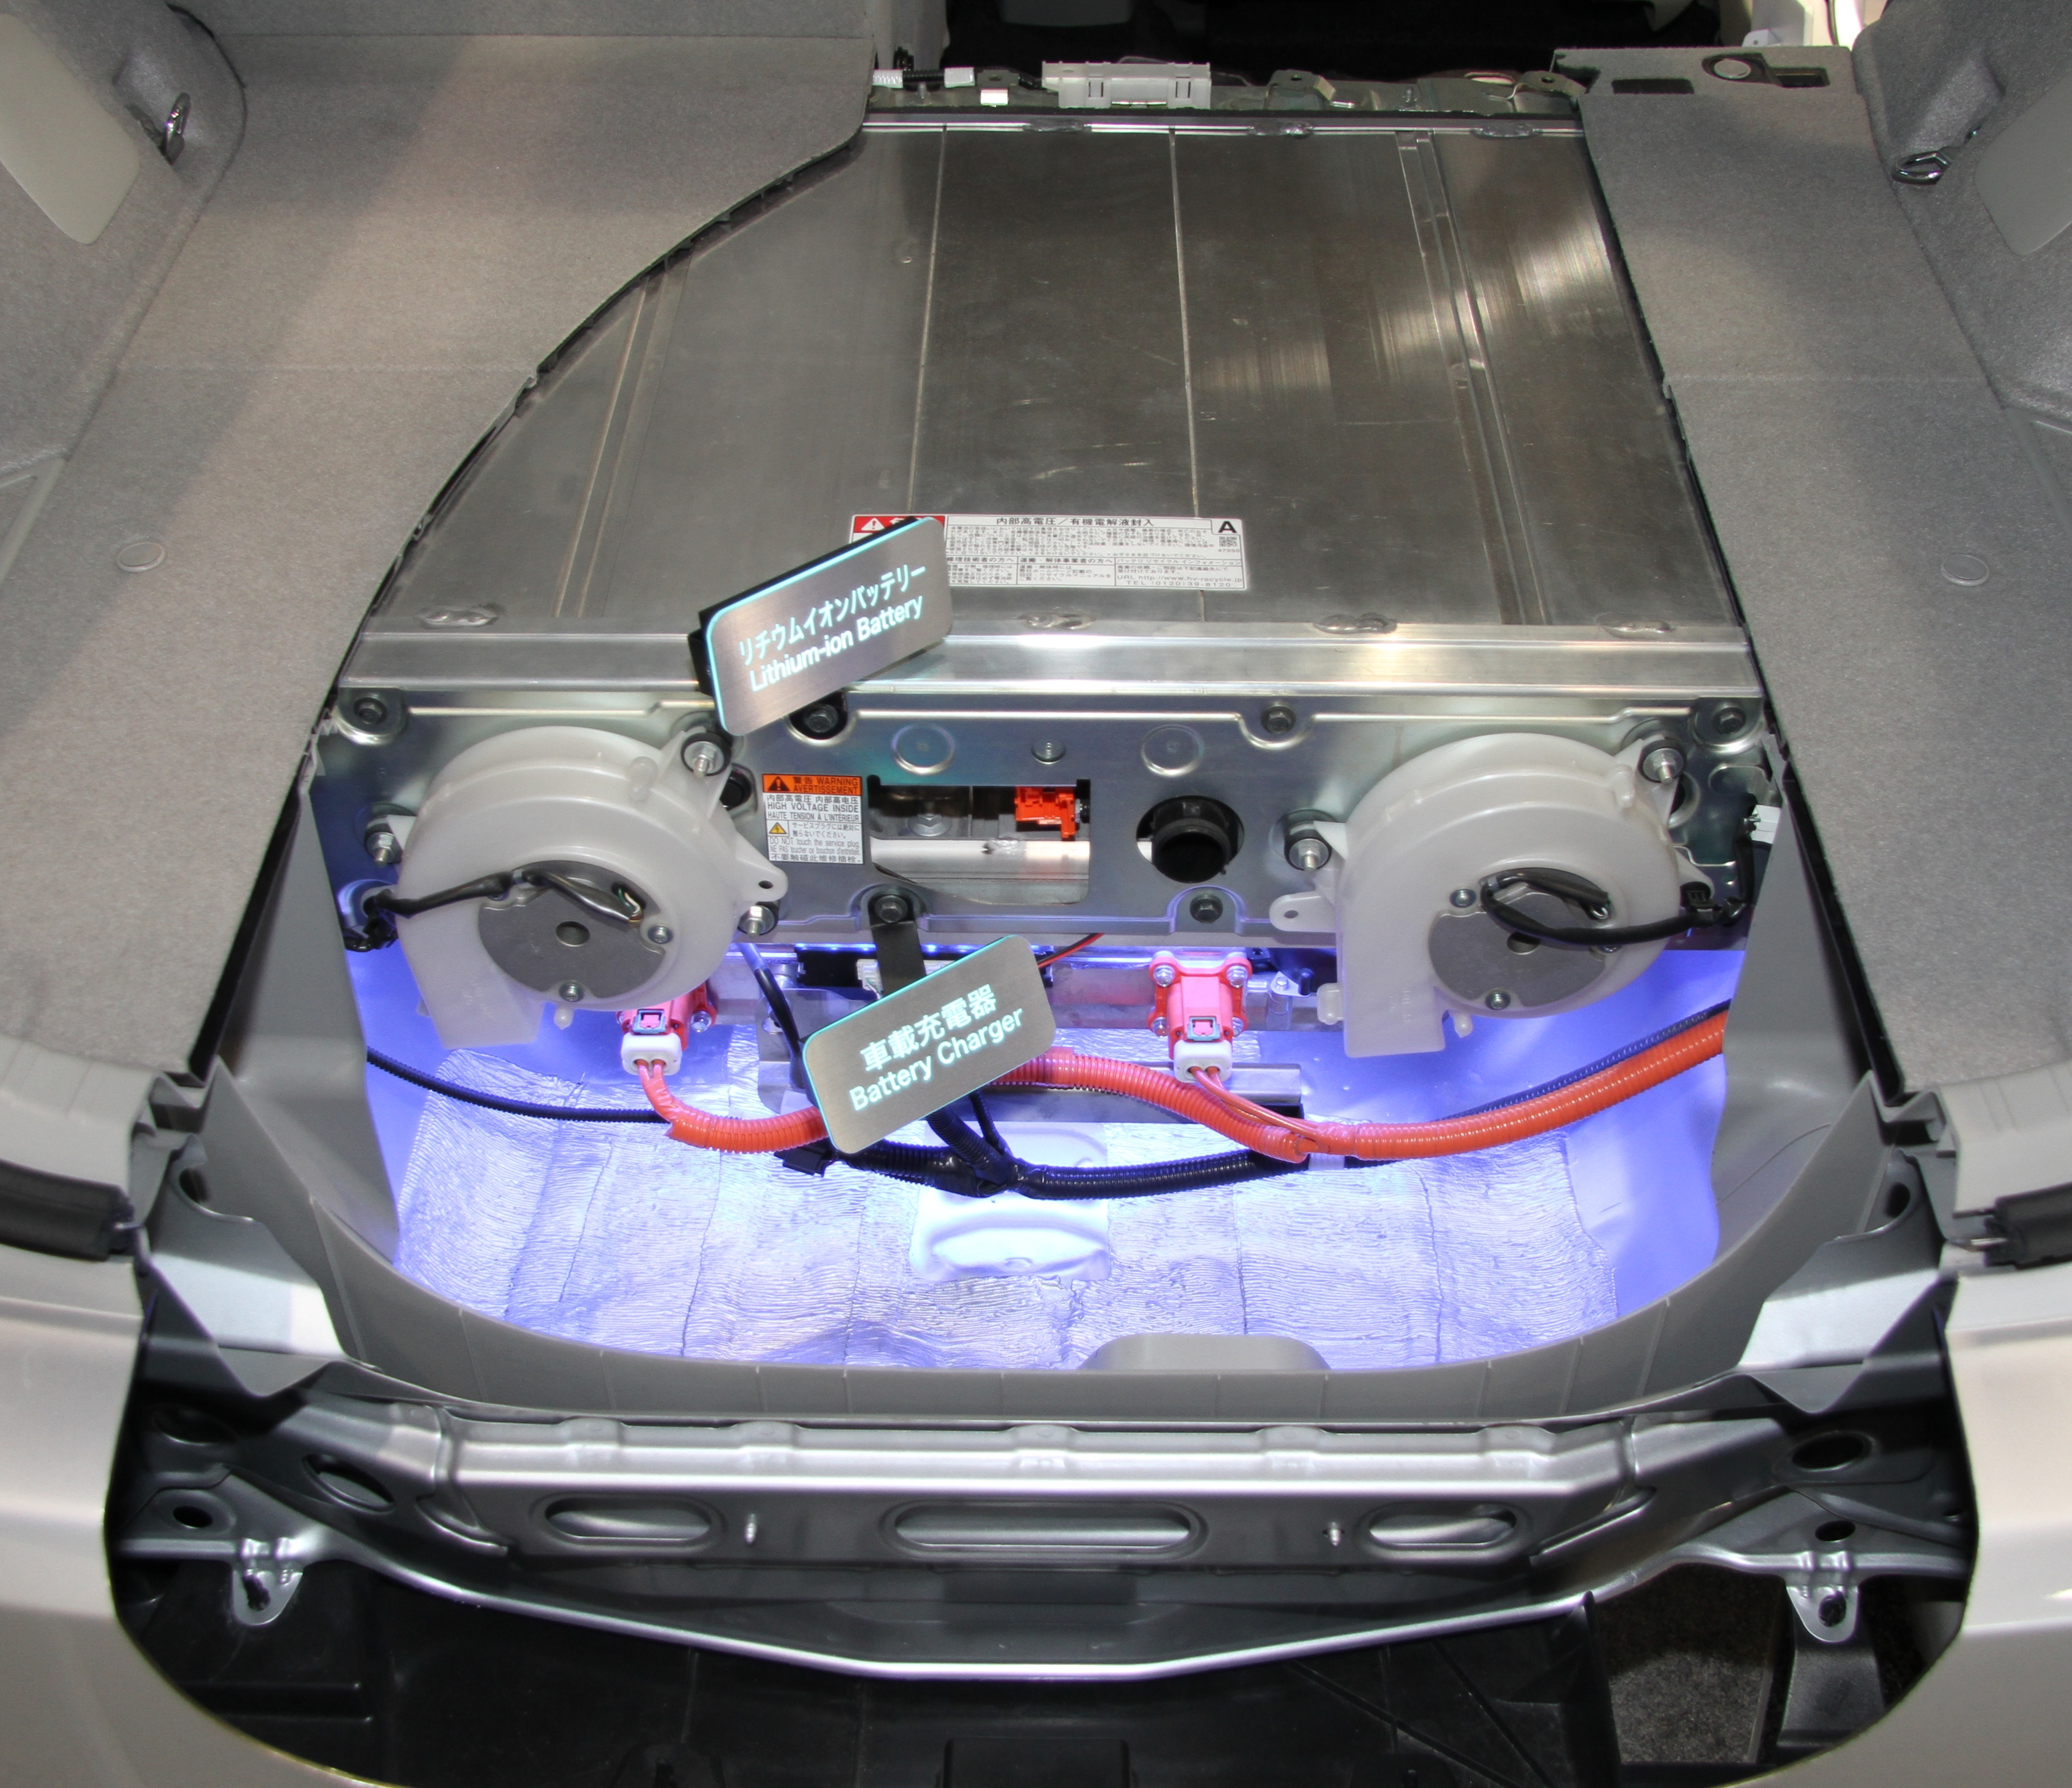 Battery Trouble Jump Start Drive also BASICS Battery Connection Notes Replacement also 2005 Toyota Prius Fuse Box as well Prius 2009 2015 together with 97 Toyota 4runner Fuse Box. on toyota prius battery jump